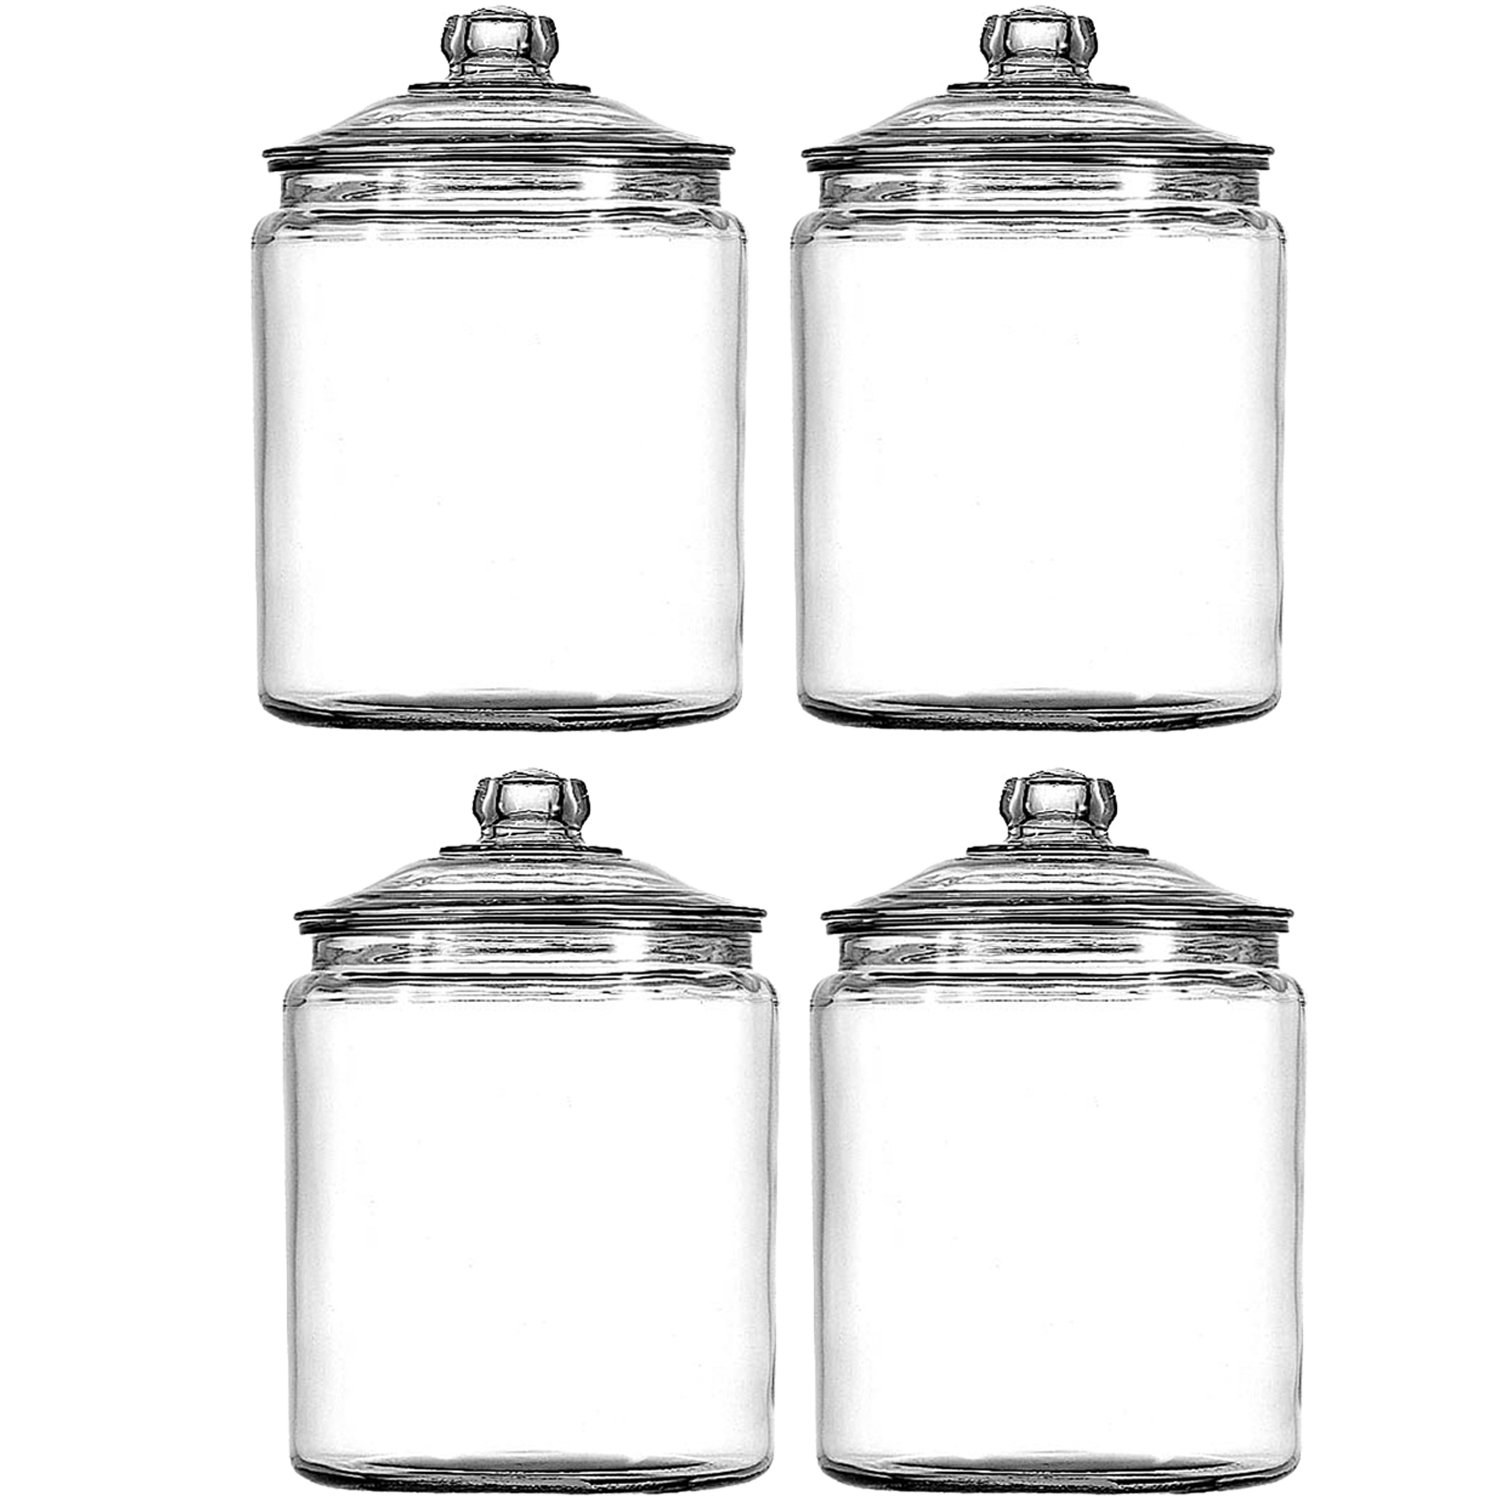 Anchor Hocking 102806 Heritage Hill Storage Jar 1 gallon, 4-Pack by Anchor Hocking